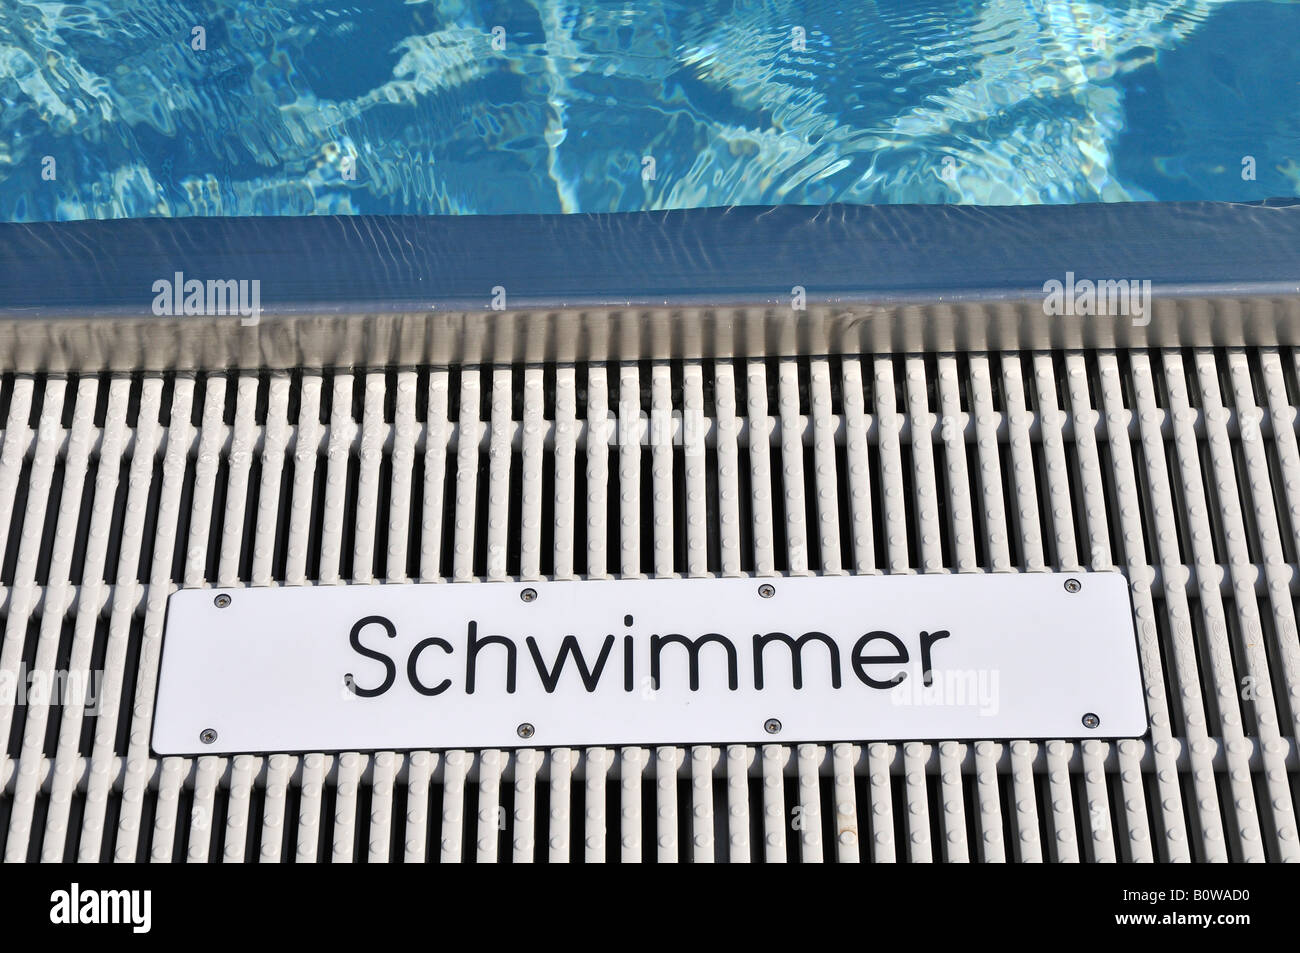 Sign, Schwimmer, swimmers, at the Schyrenbad swimming pool in Munich, Bavaria, Germany - Stock Image